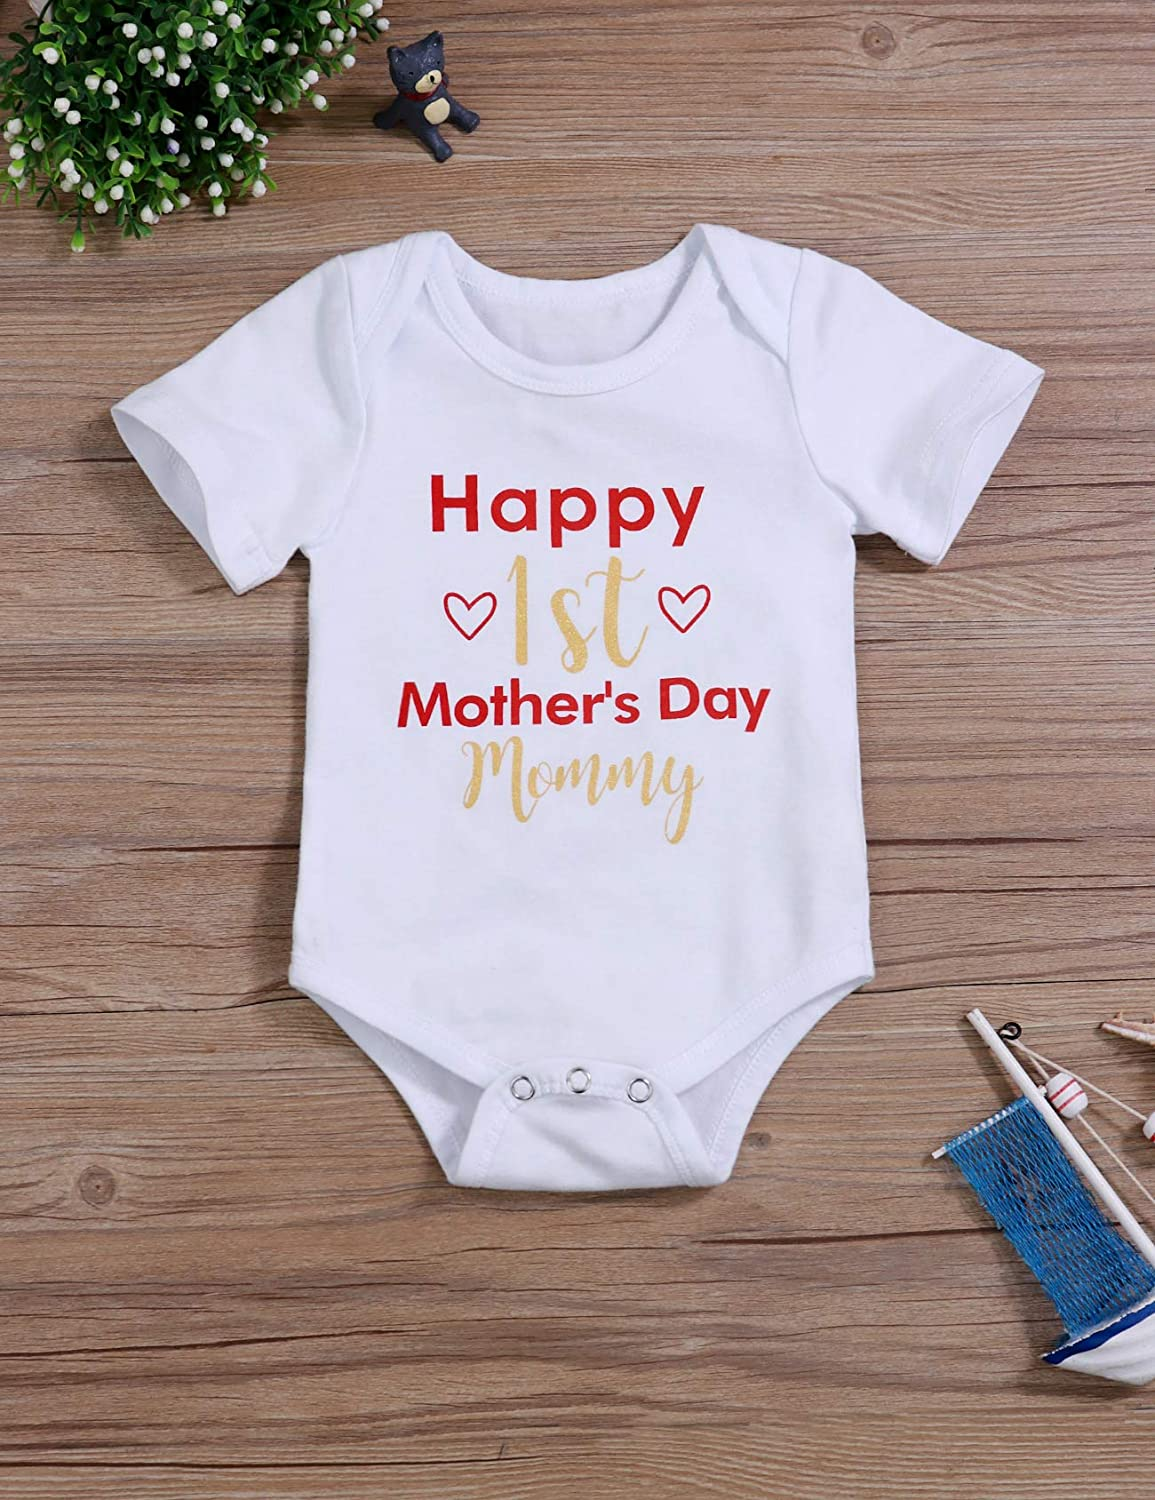 Newborn Baby Boy Girl Happy 1st Mothers Day Outfit Mommy Bodysuit Cute Short Sleeve Onesies